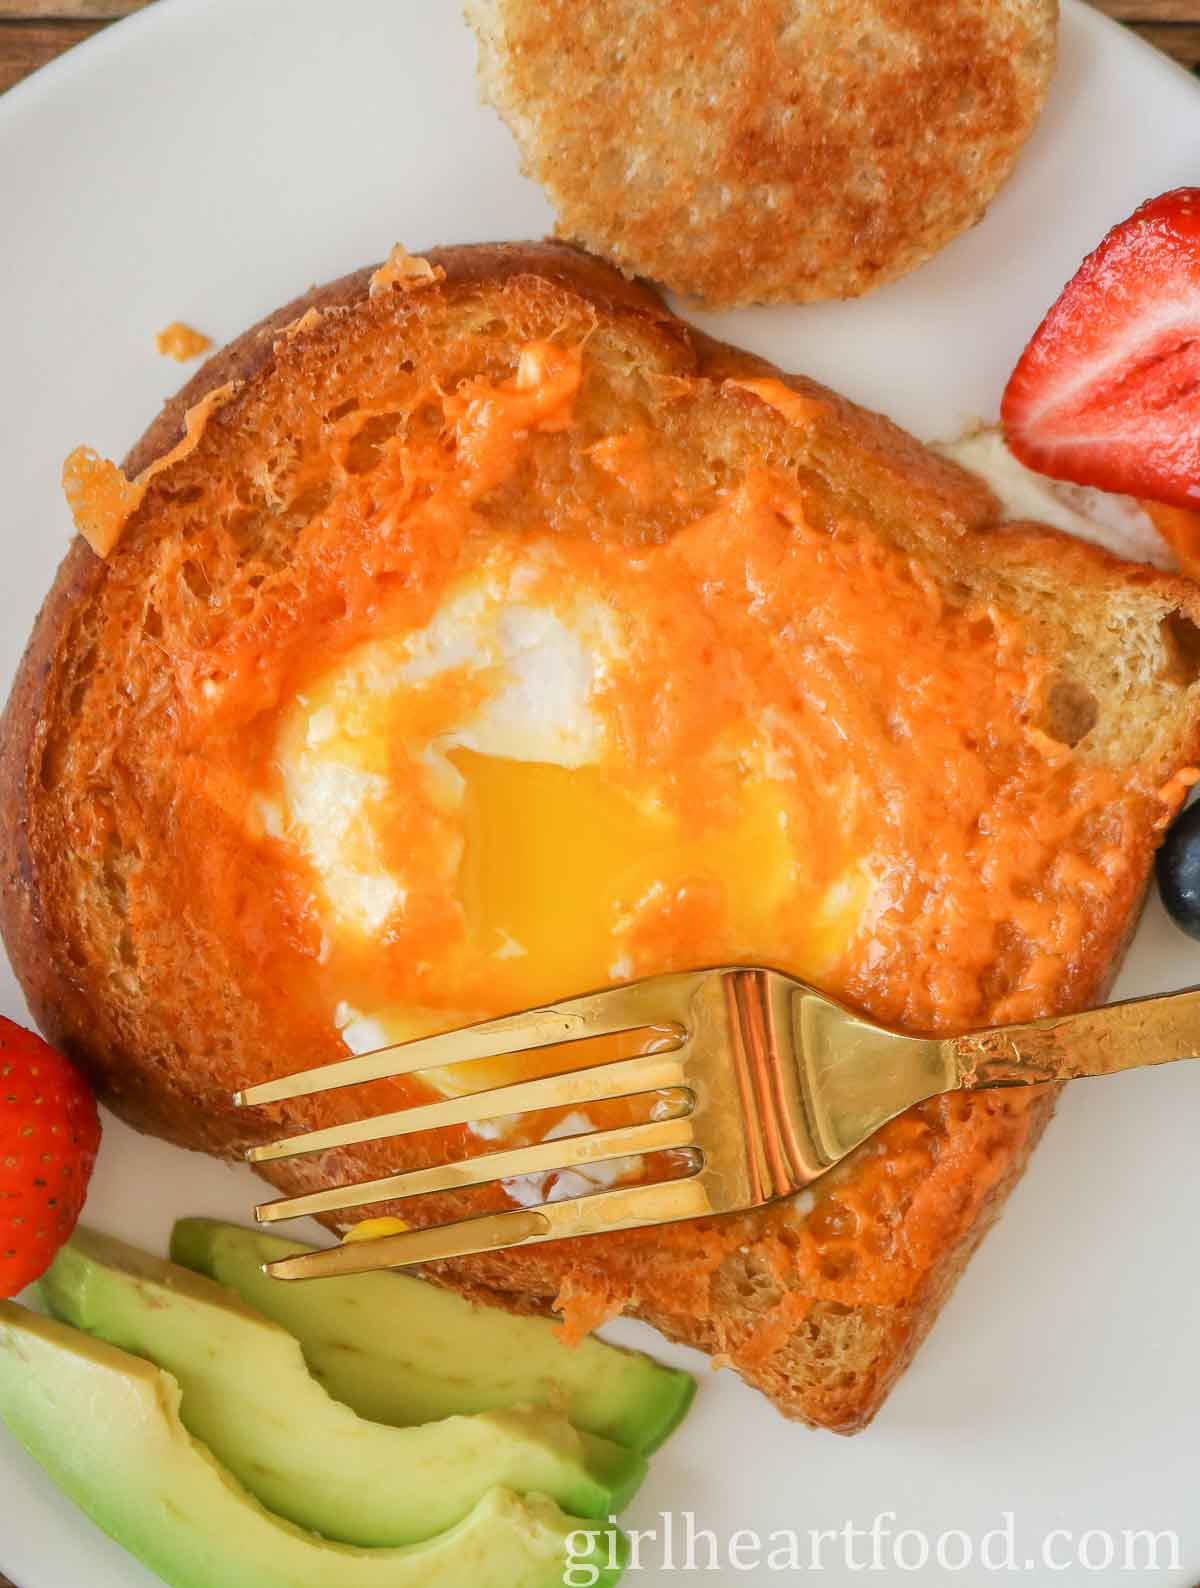 Egg-in-a-hole toast (with the yolk broke) and a gold fork resting on top of it.